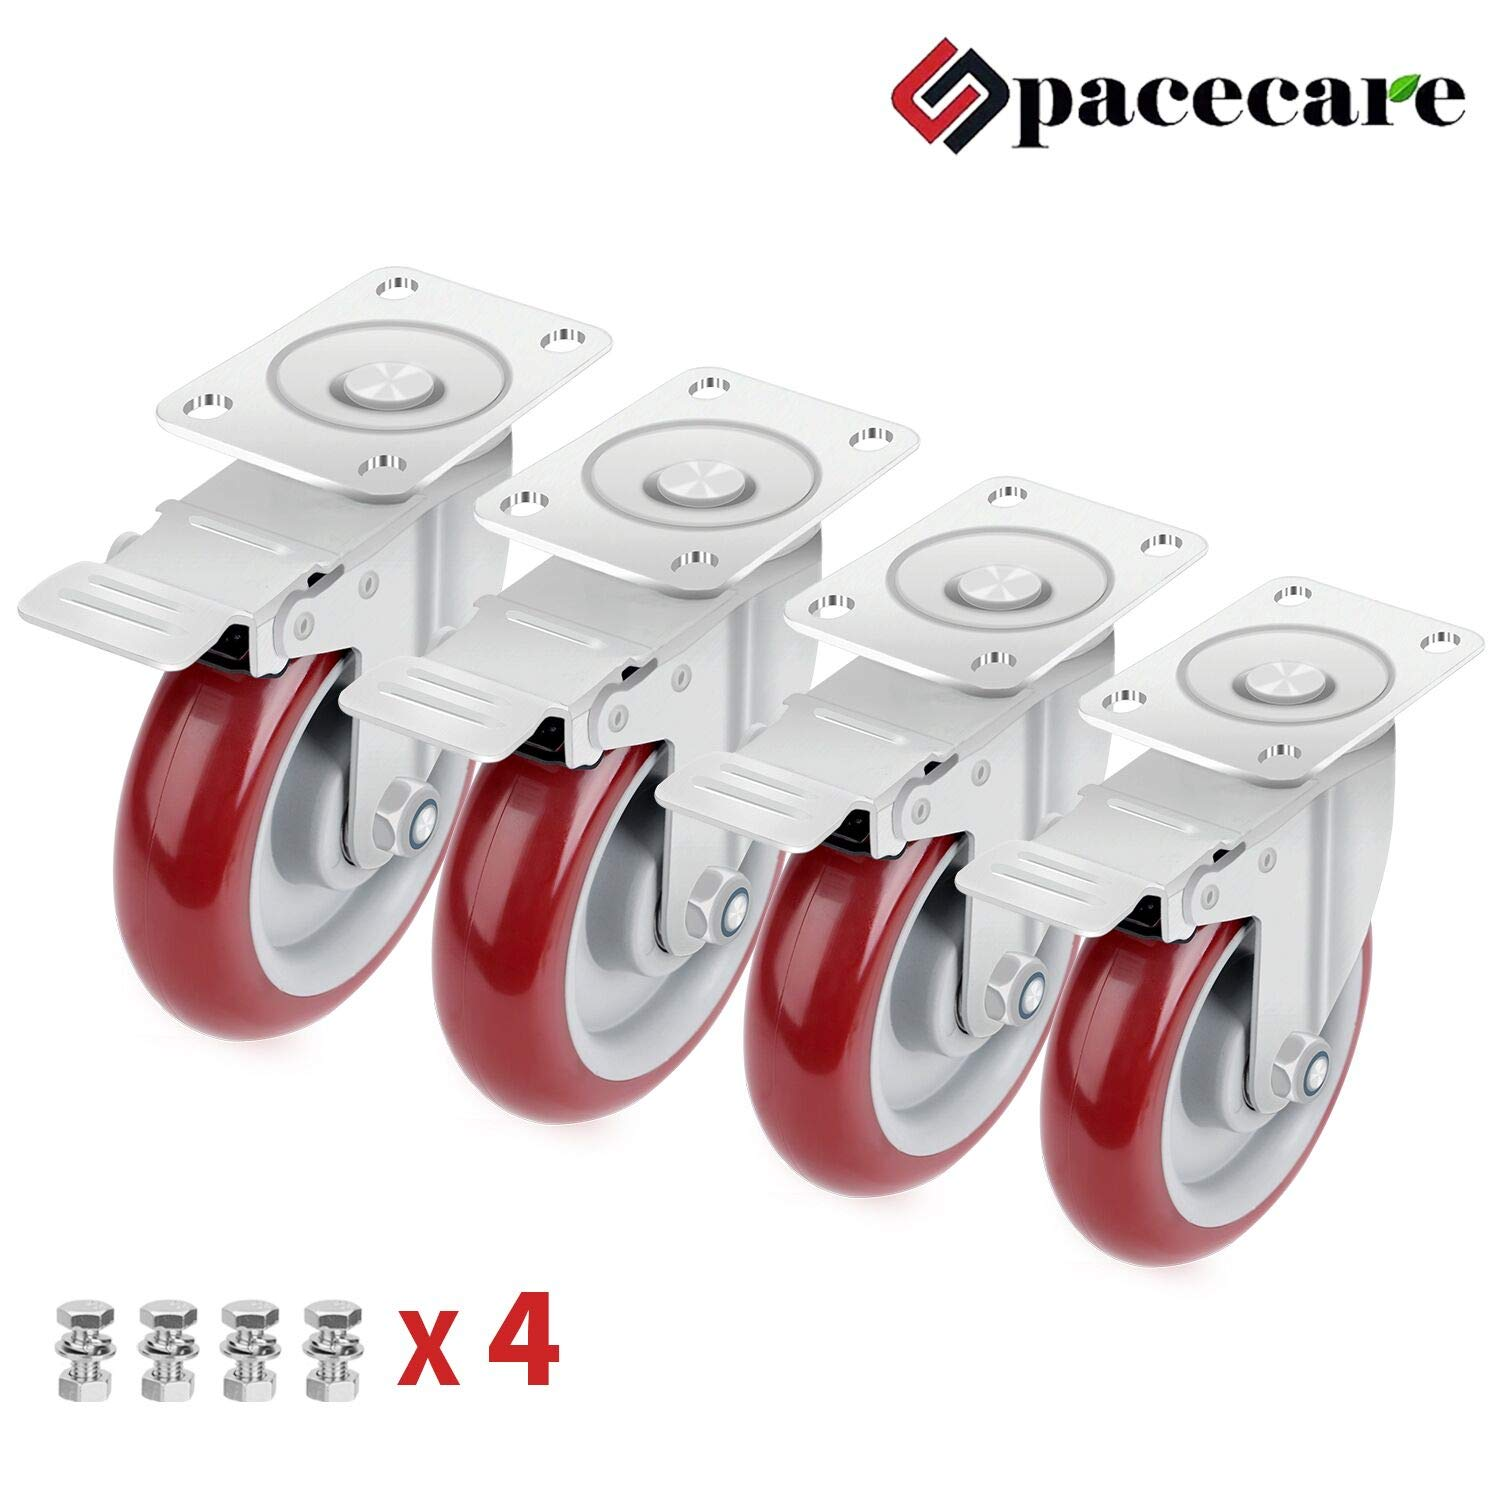 SPACECARE 4 Pack 5 Swivel Caster Polyurethane Wheels with Safety Dual Locking No Noise Wheels Lockable Anti wear Smooth Silent Heavy Duty 355lb Each